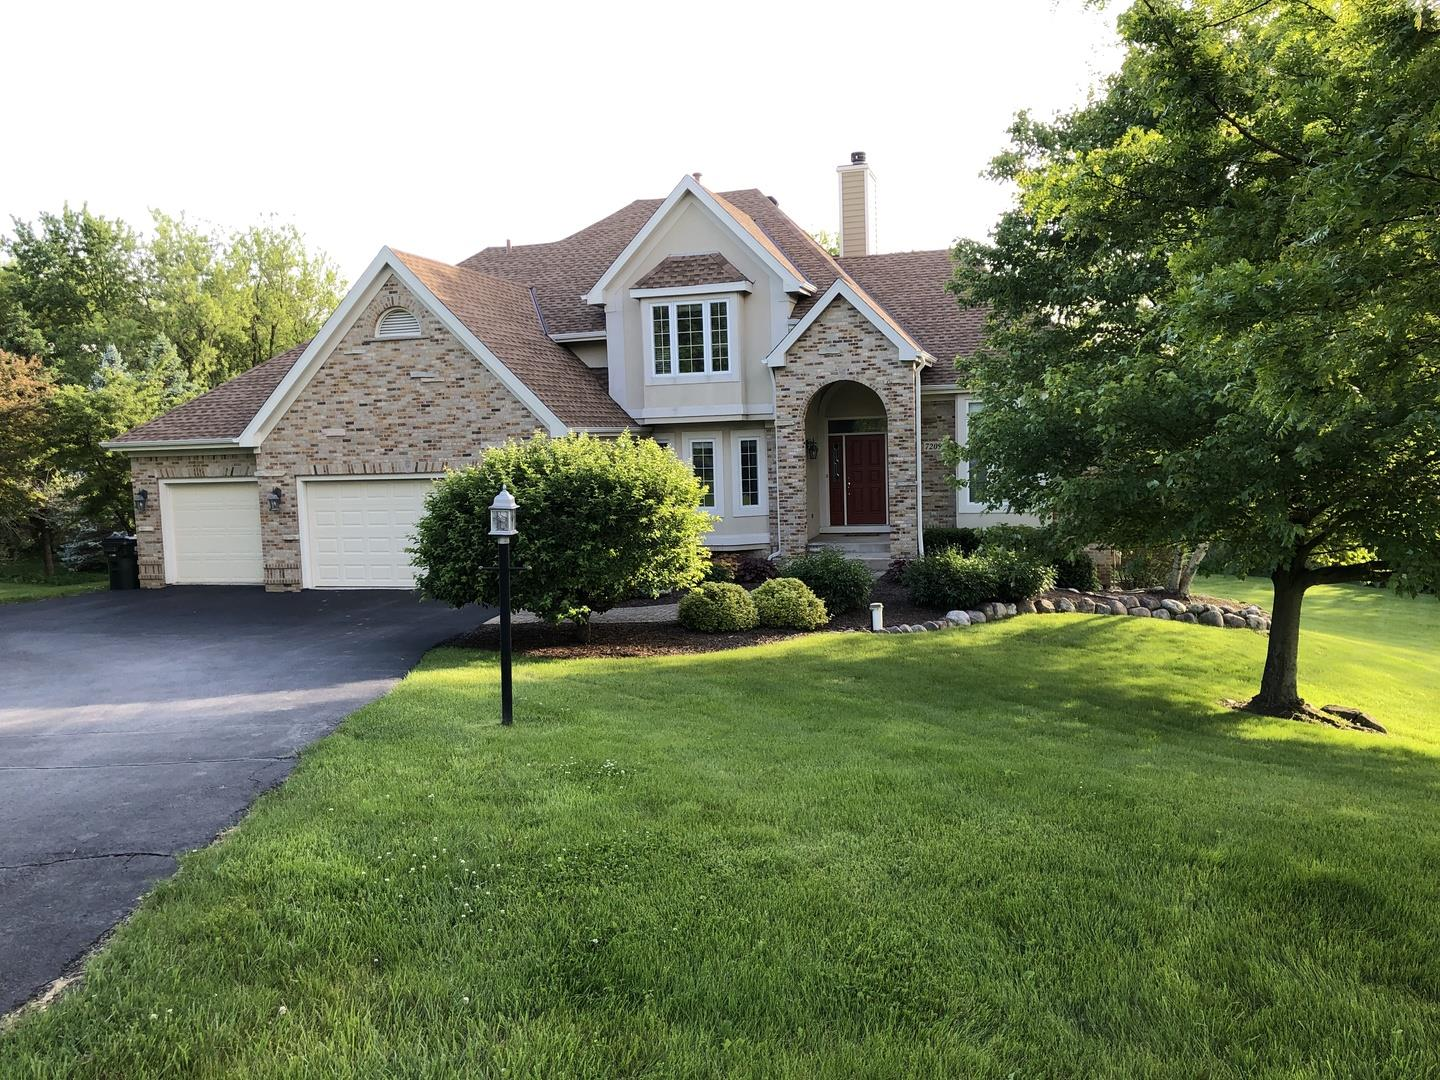 7209 Ridge Court, Spring Grove, IL 60081 - #: 10948621